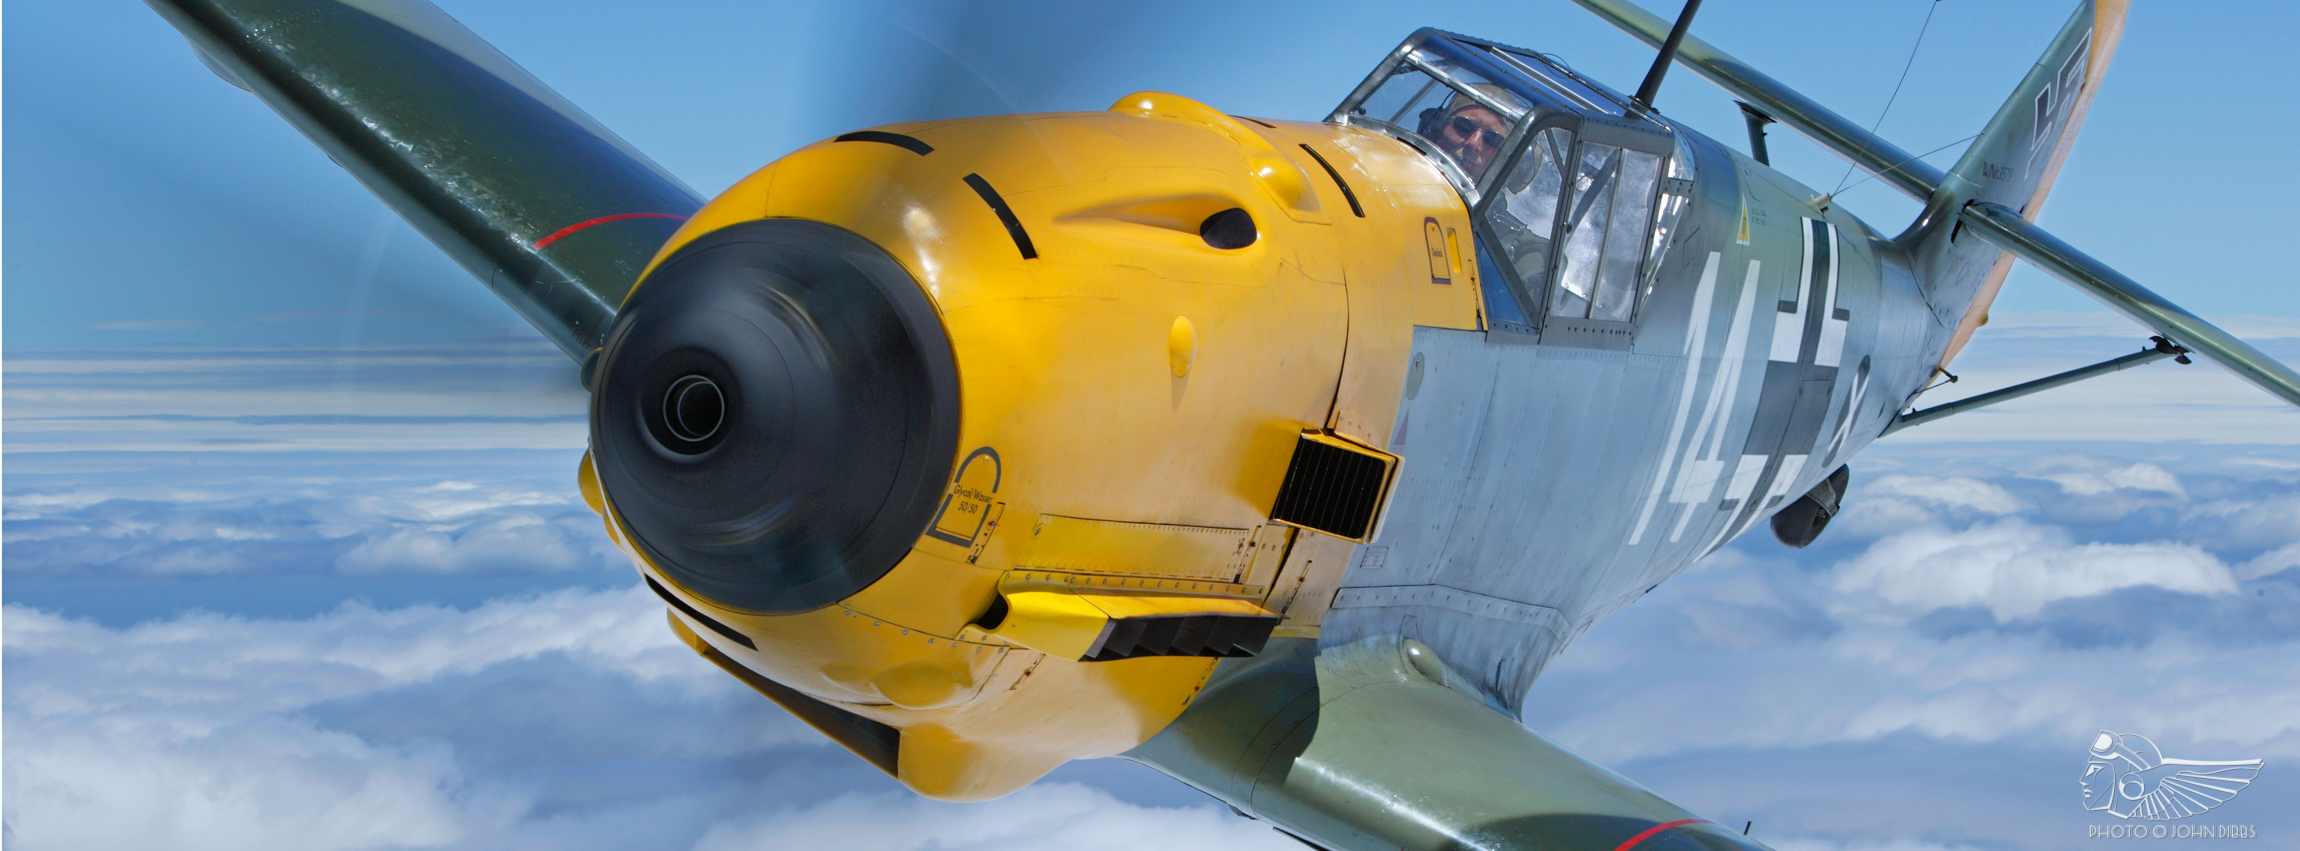 Mastering the 'Emil': John Romain on the Messerschmitt Bf 109E